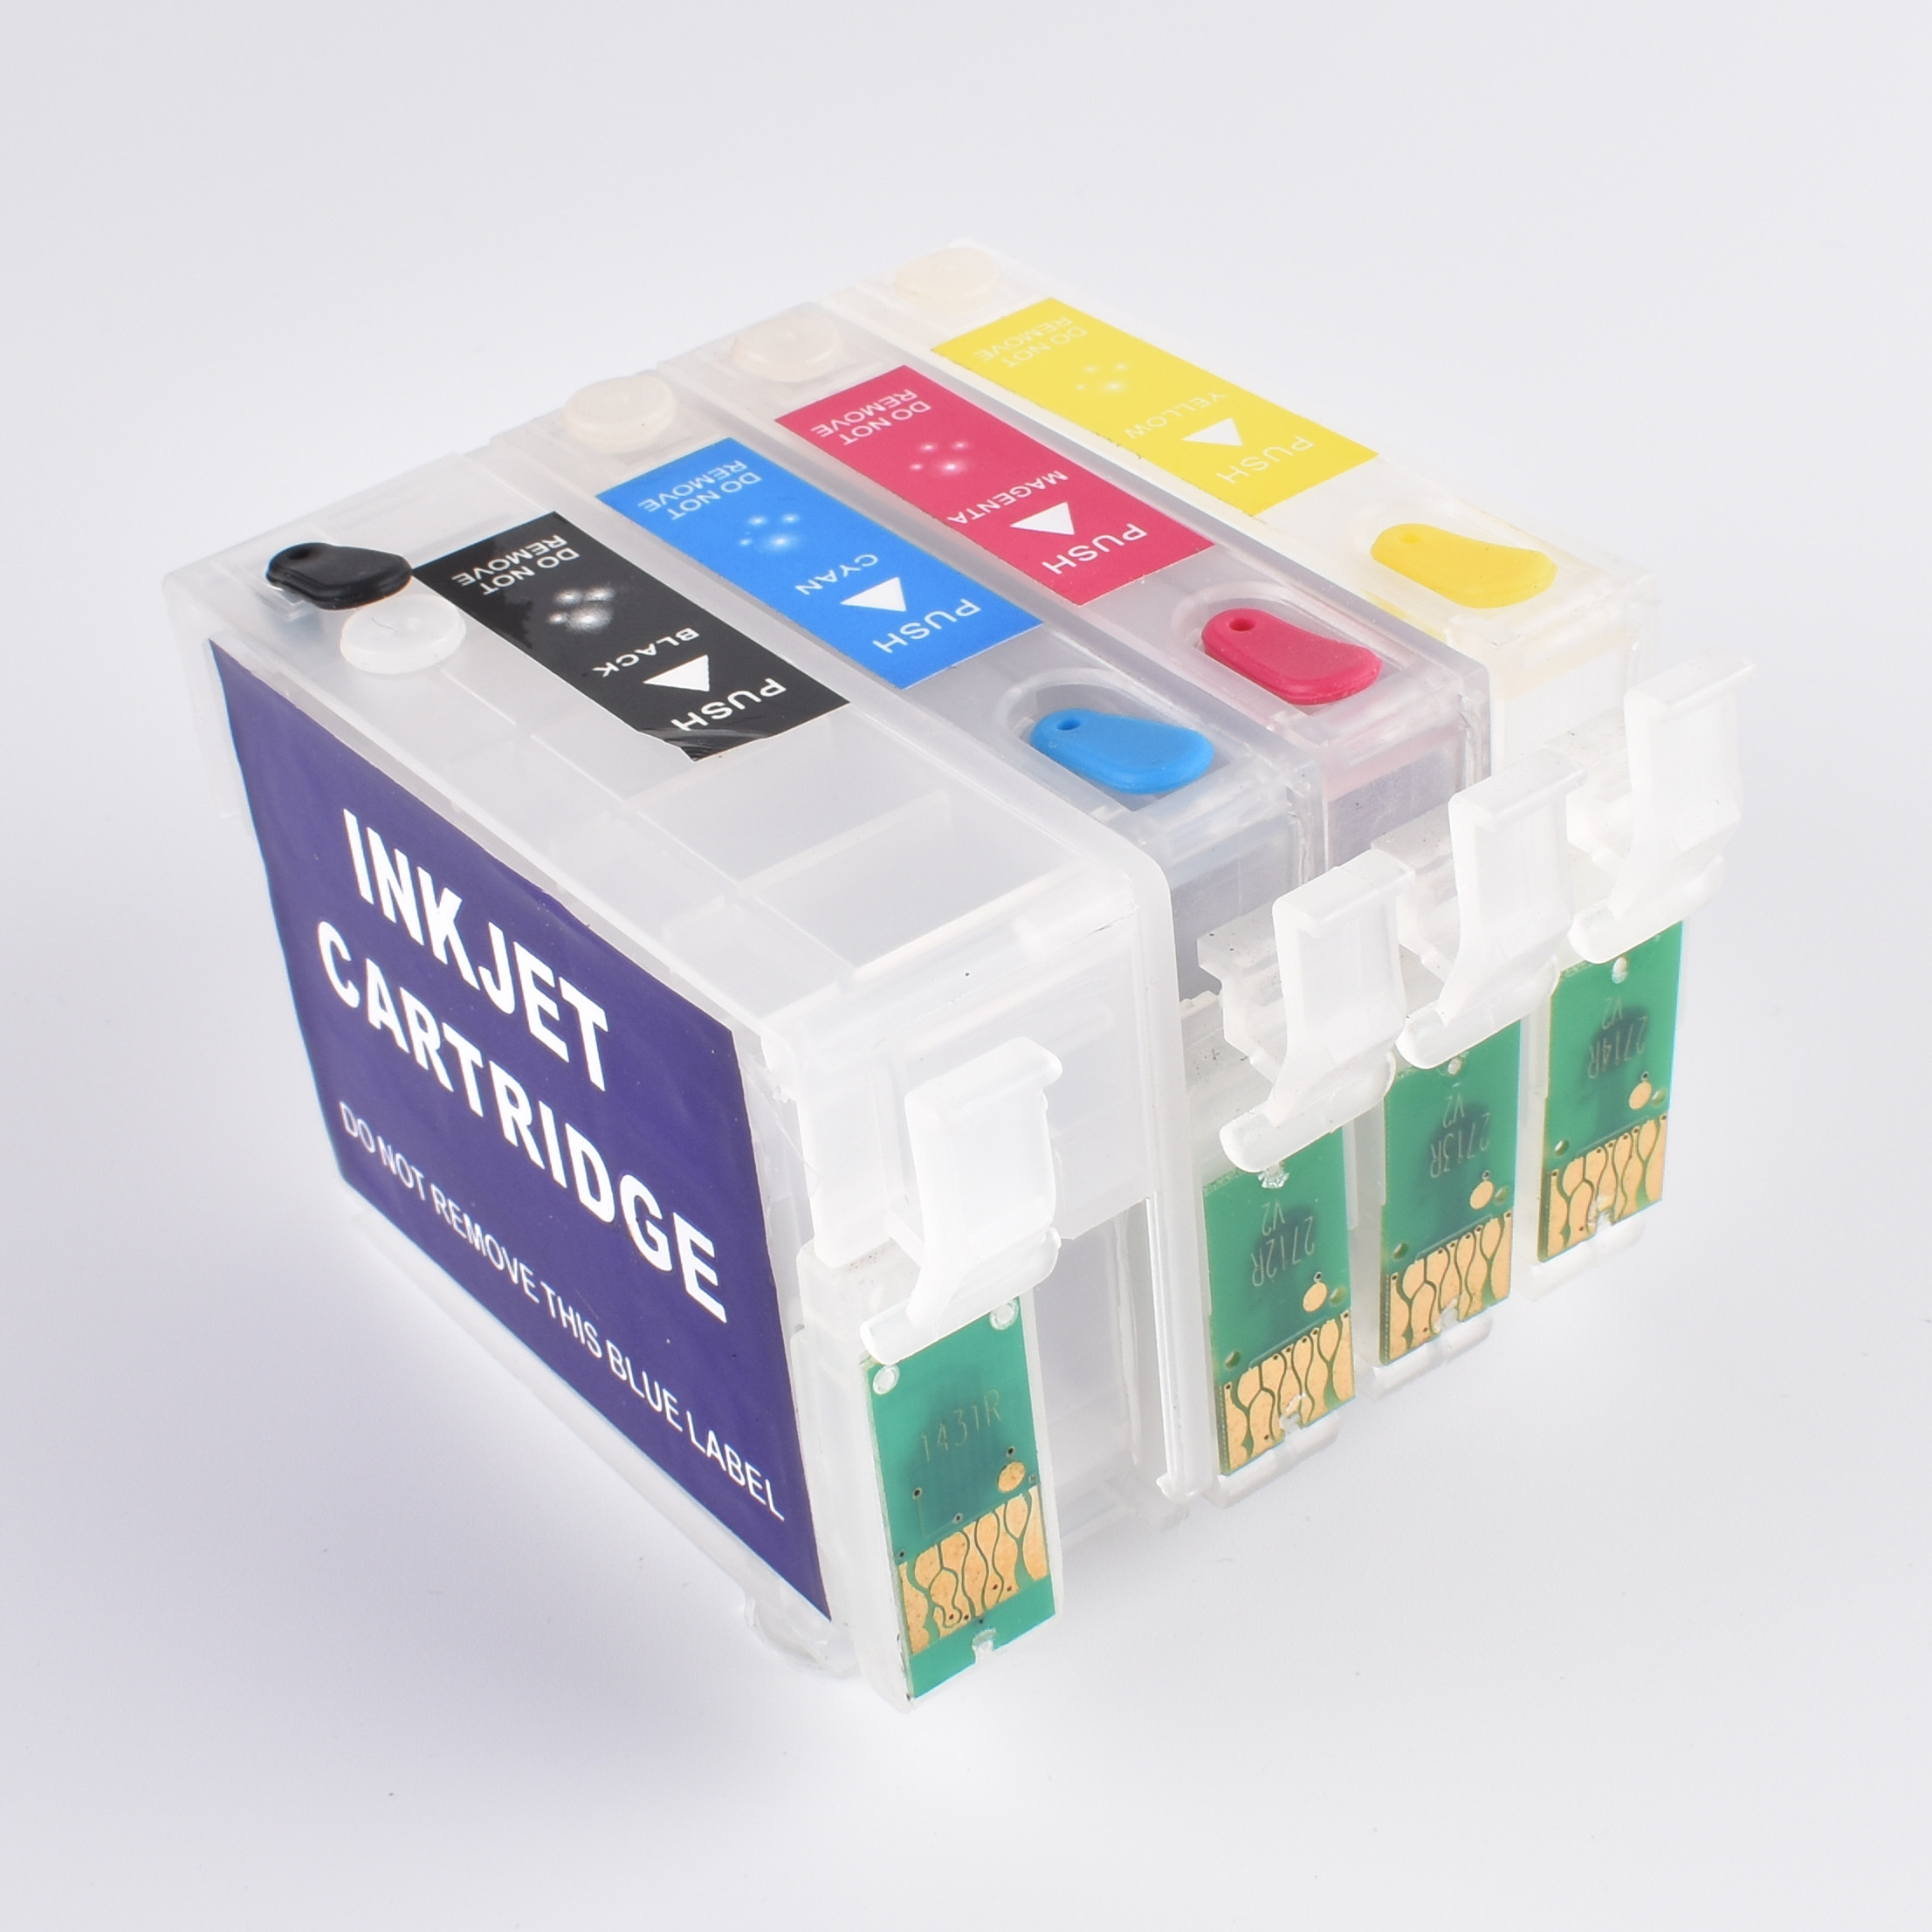 150set T2521 25XL Refill Ink Cartridge For Epson WorkForce WF-3620 WF-3640 WF-7610 WF-7620 WF-7110 WF-7710 WF-7720 WF-7210